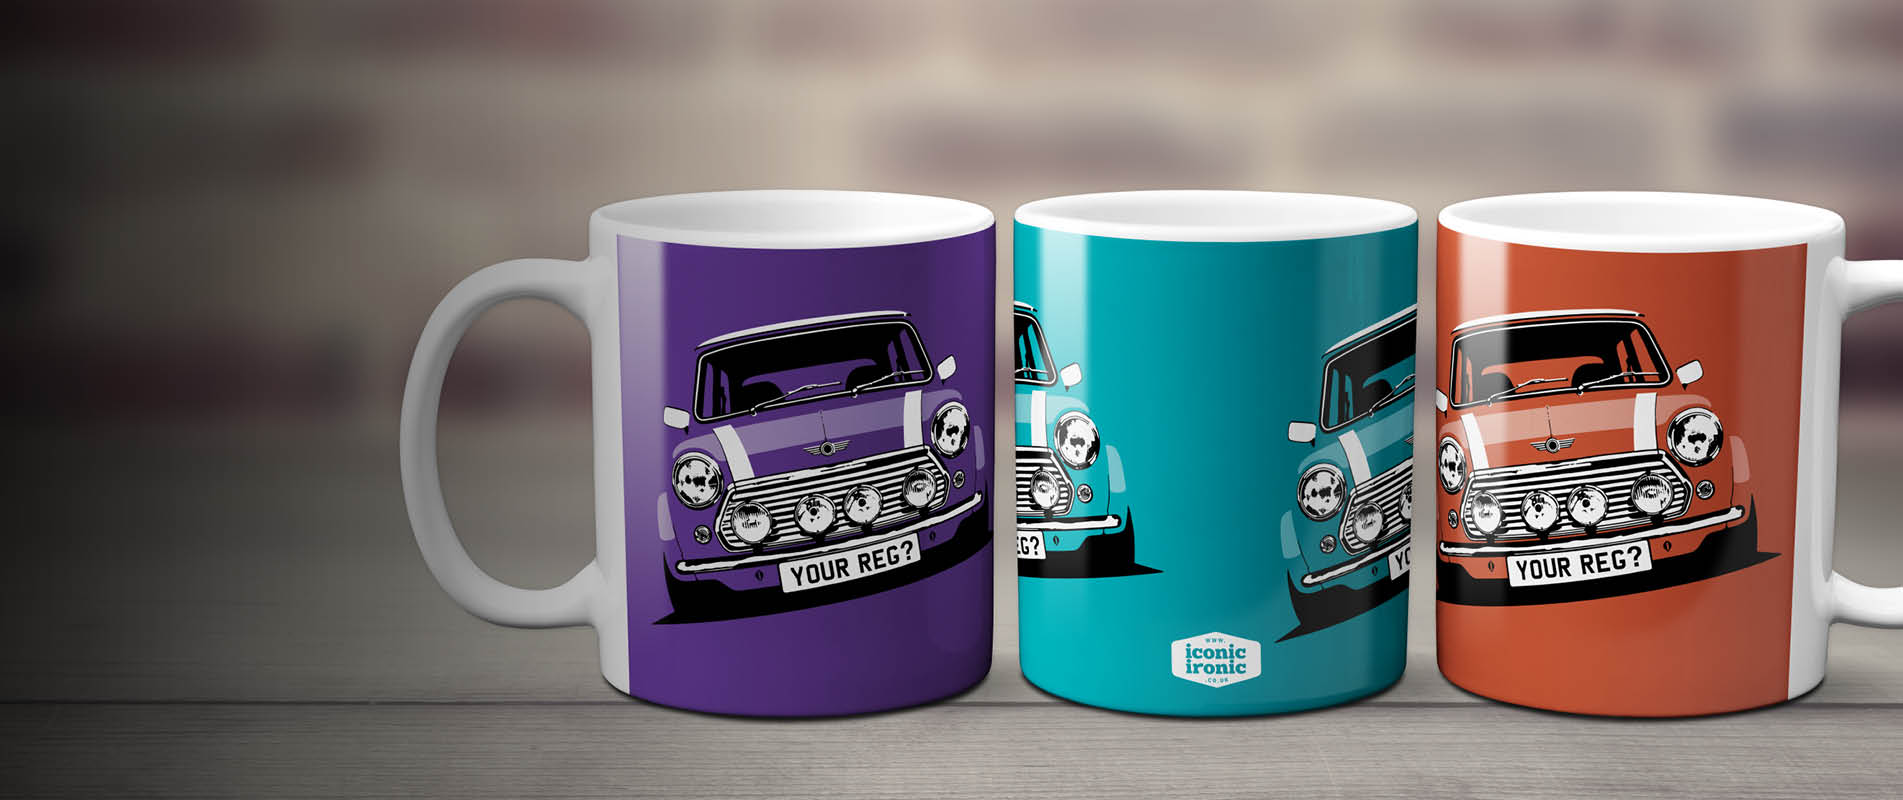 Mini Cooper Mugs header image